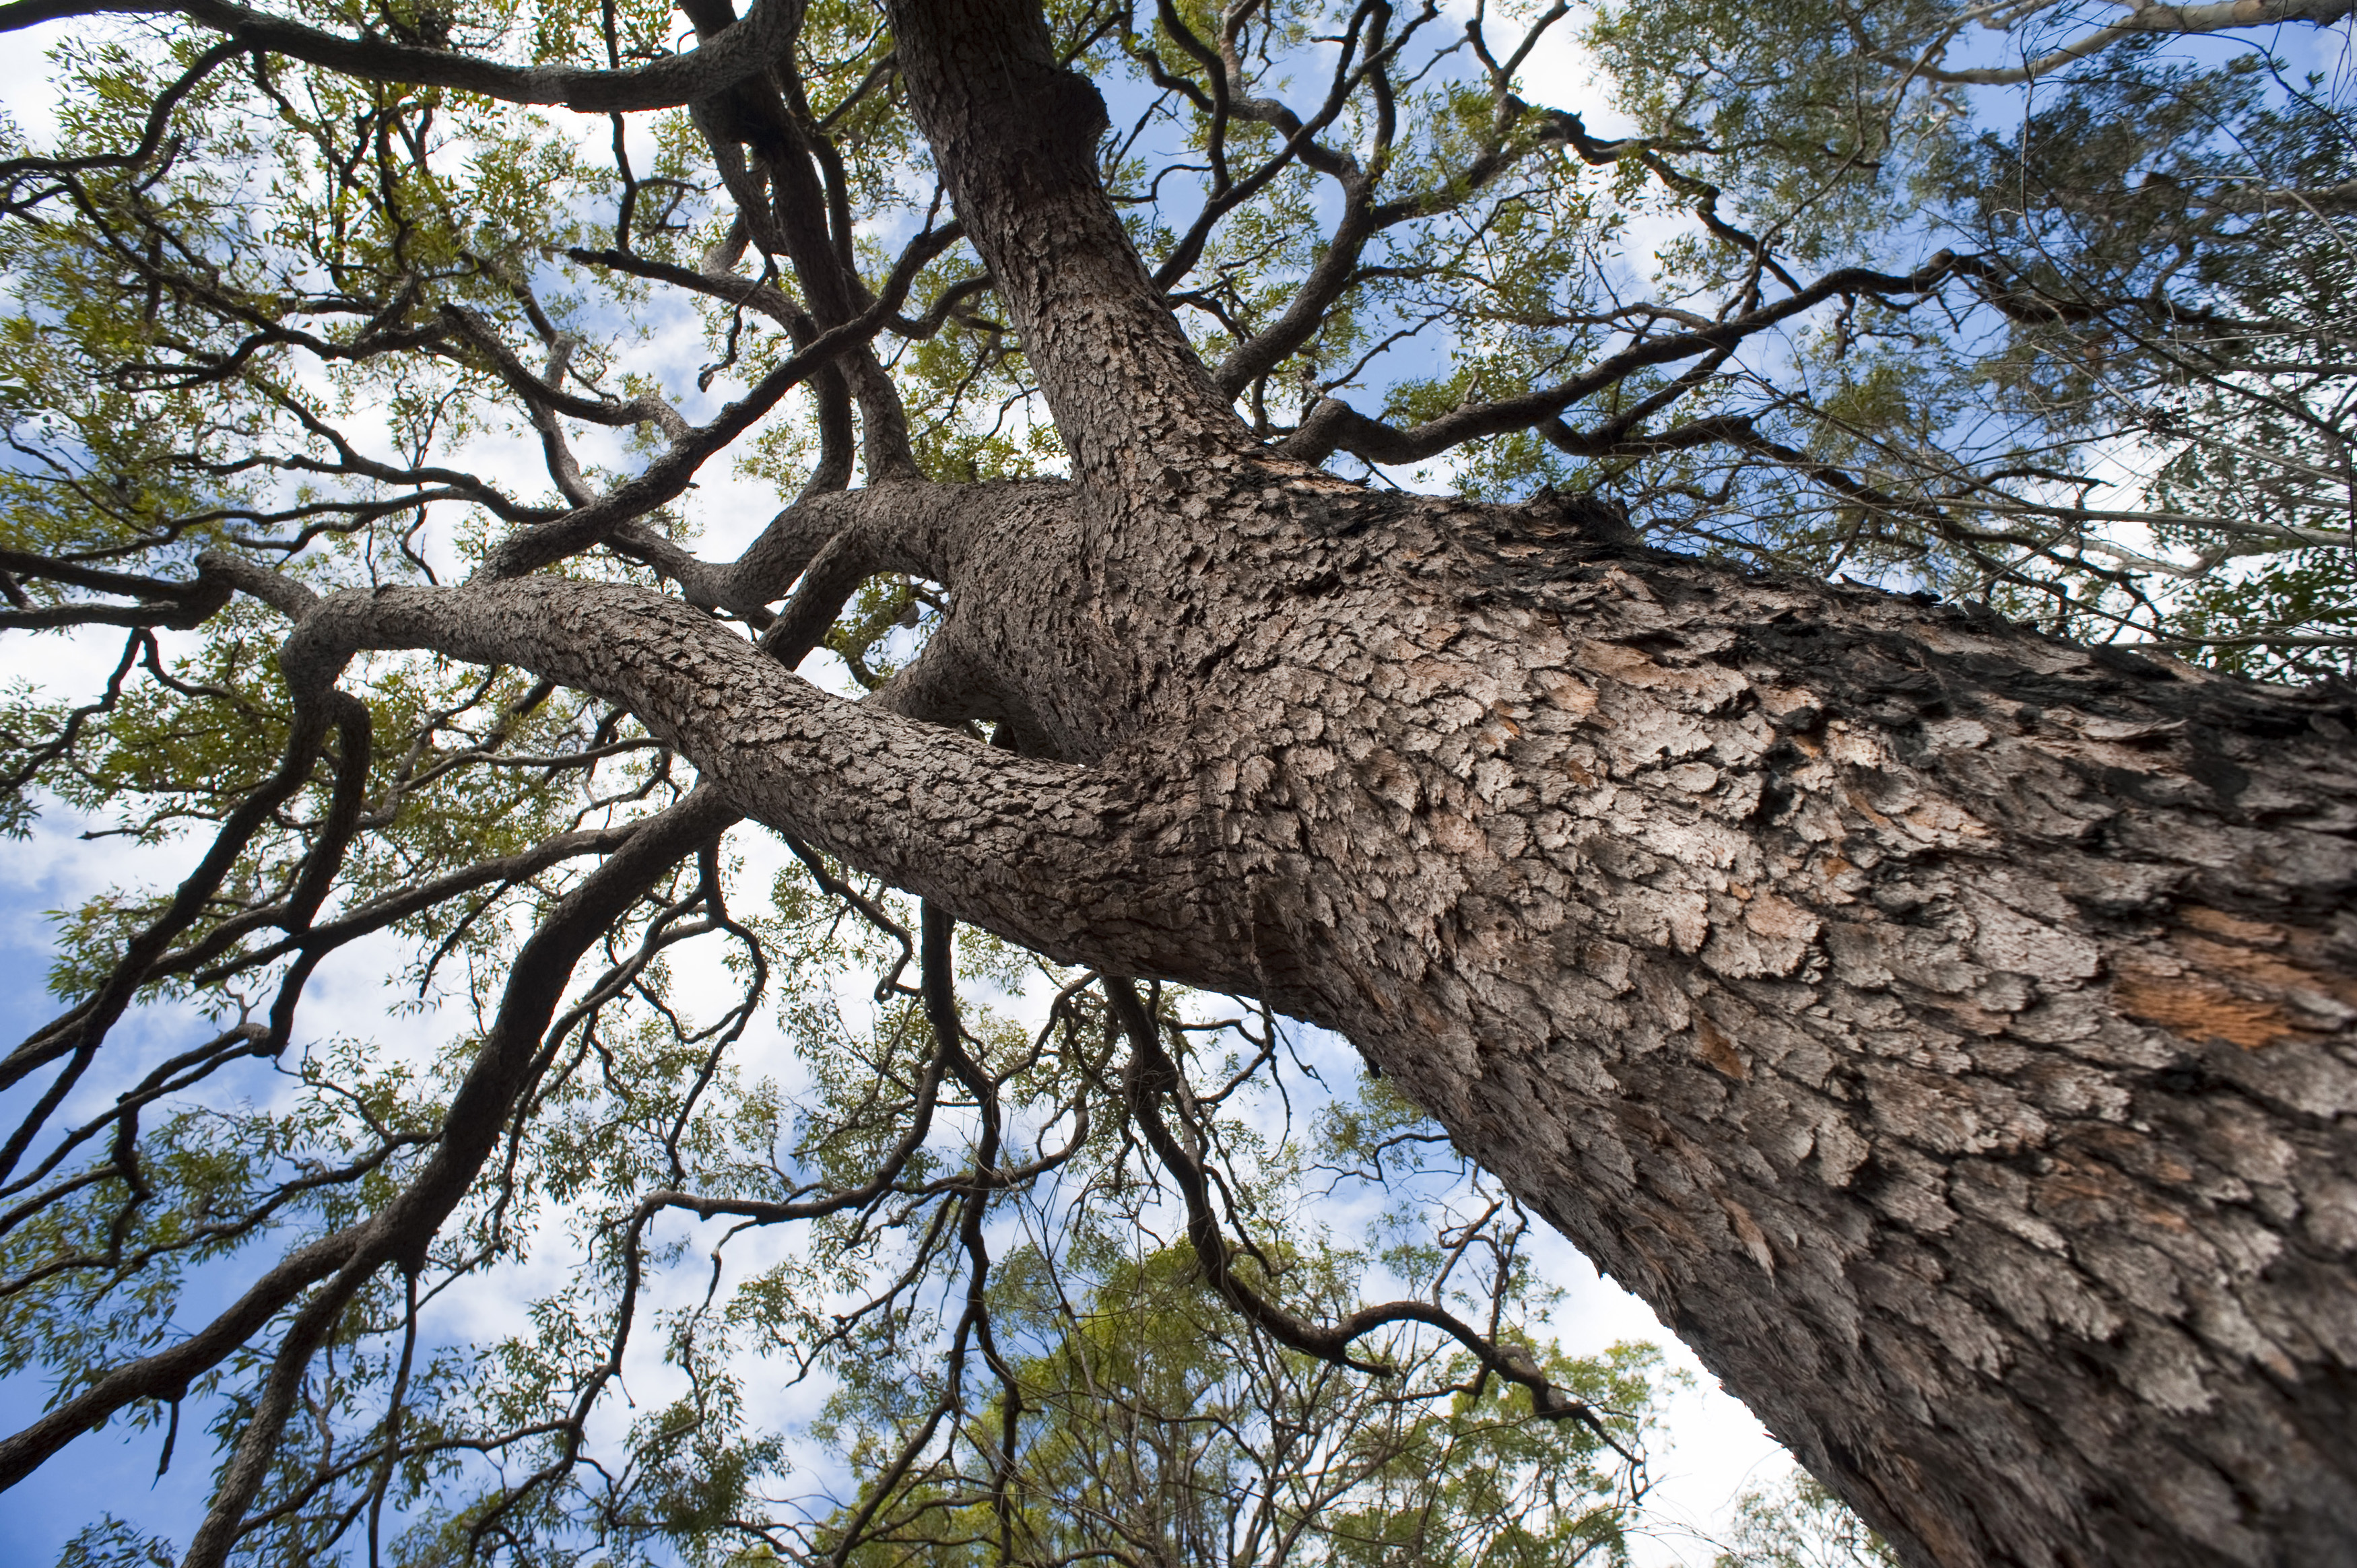 free image of looking up into the canopy of a large tree